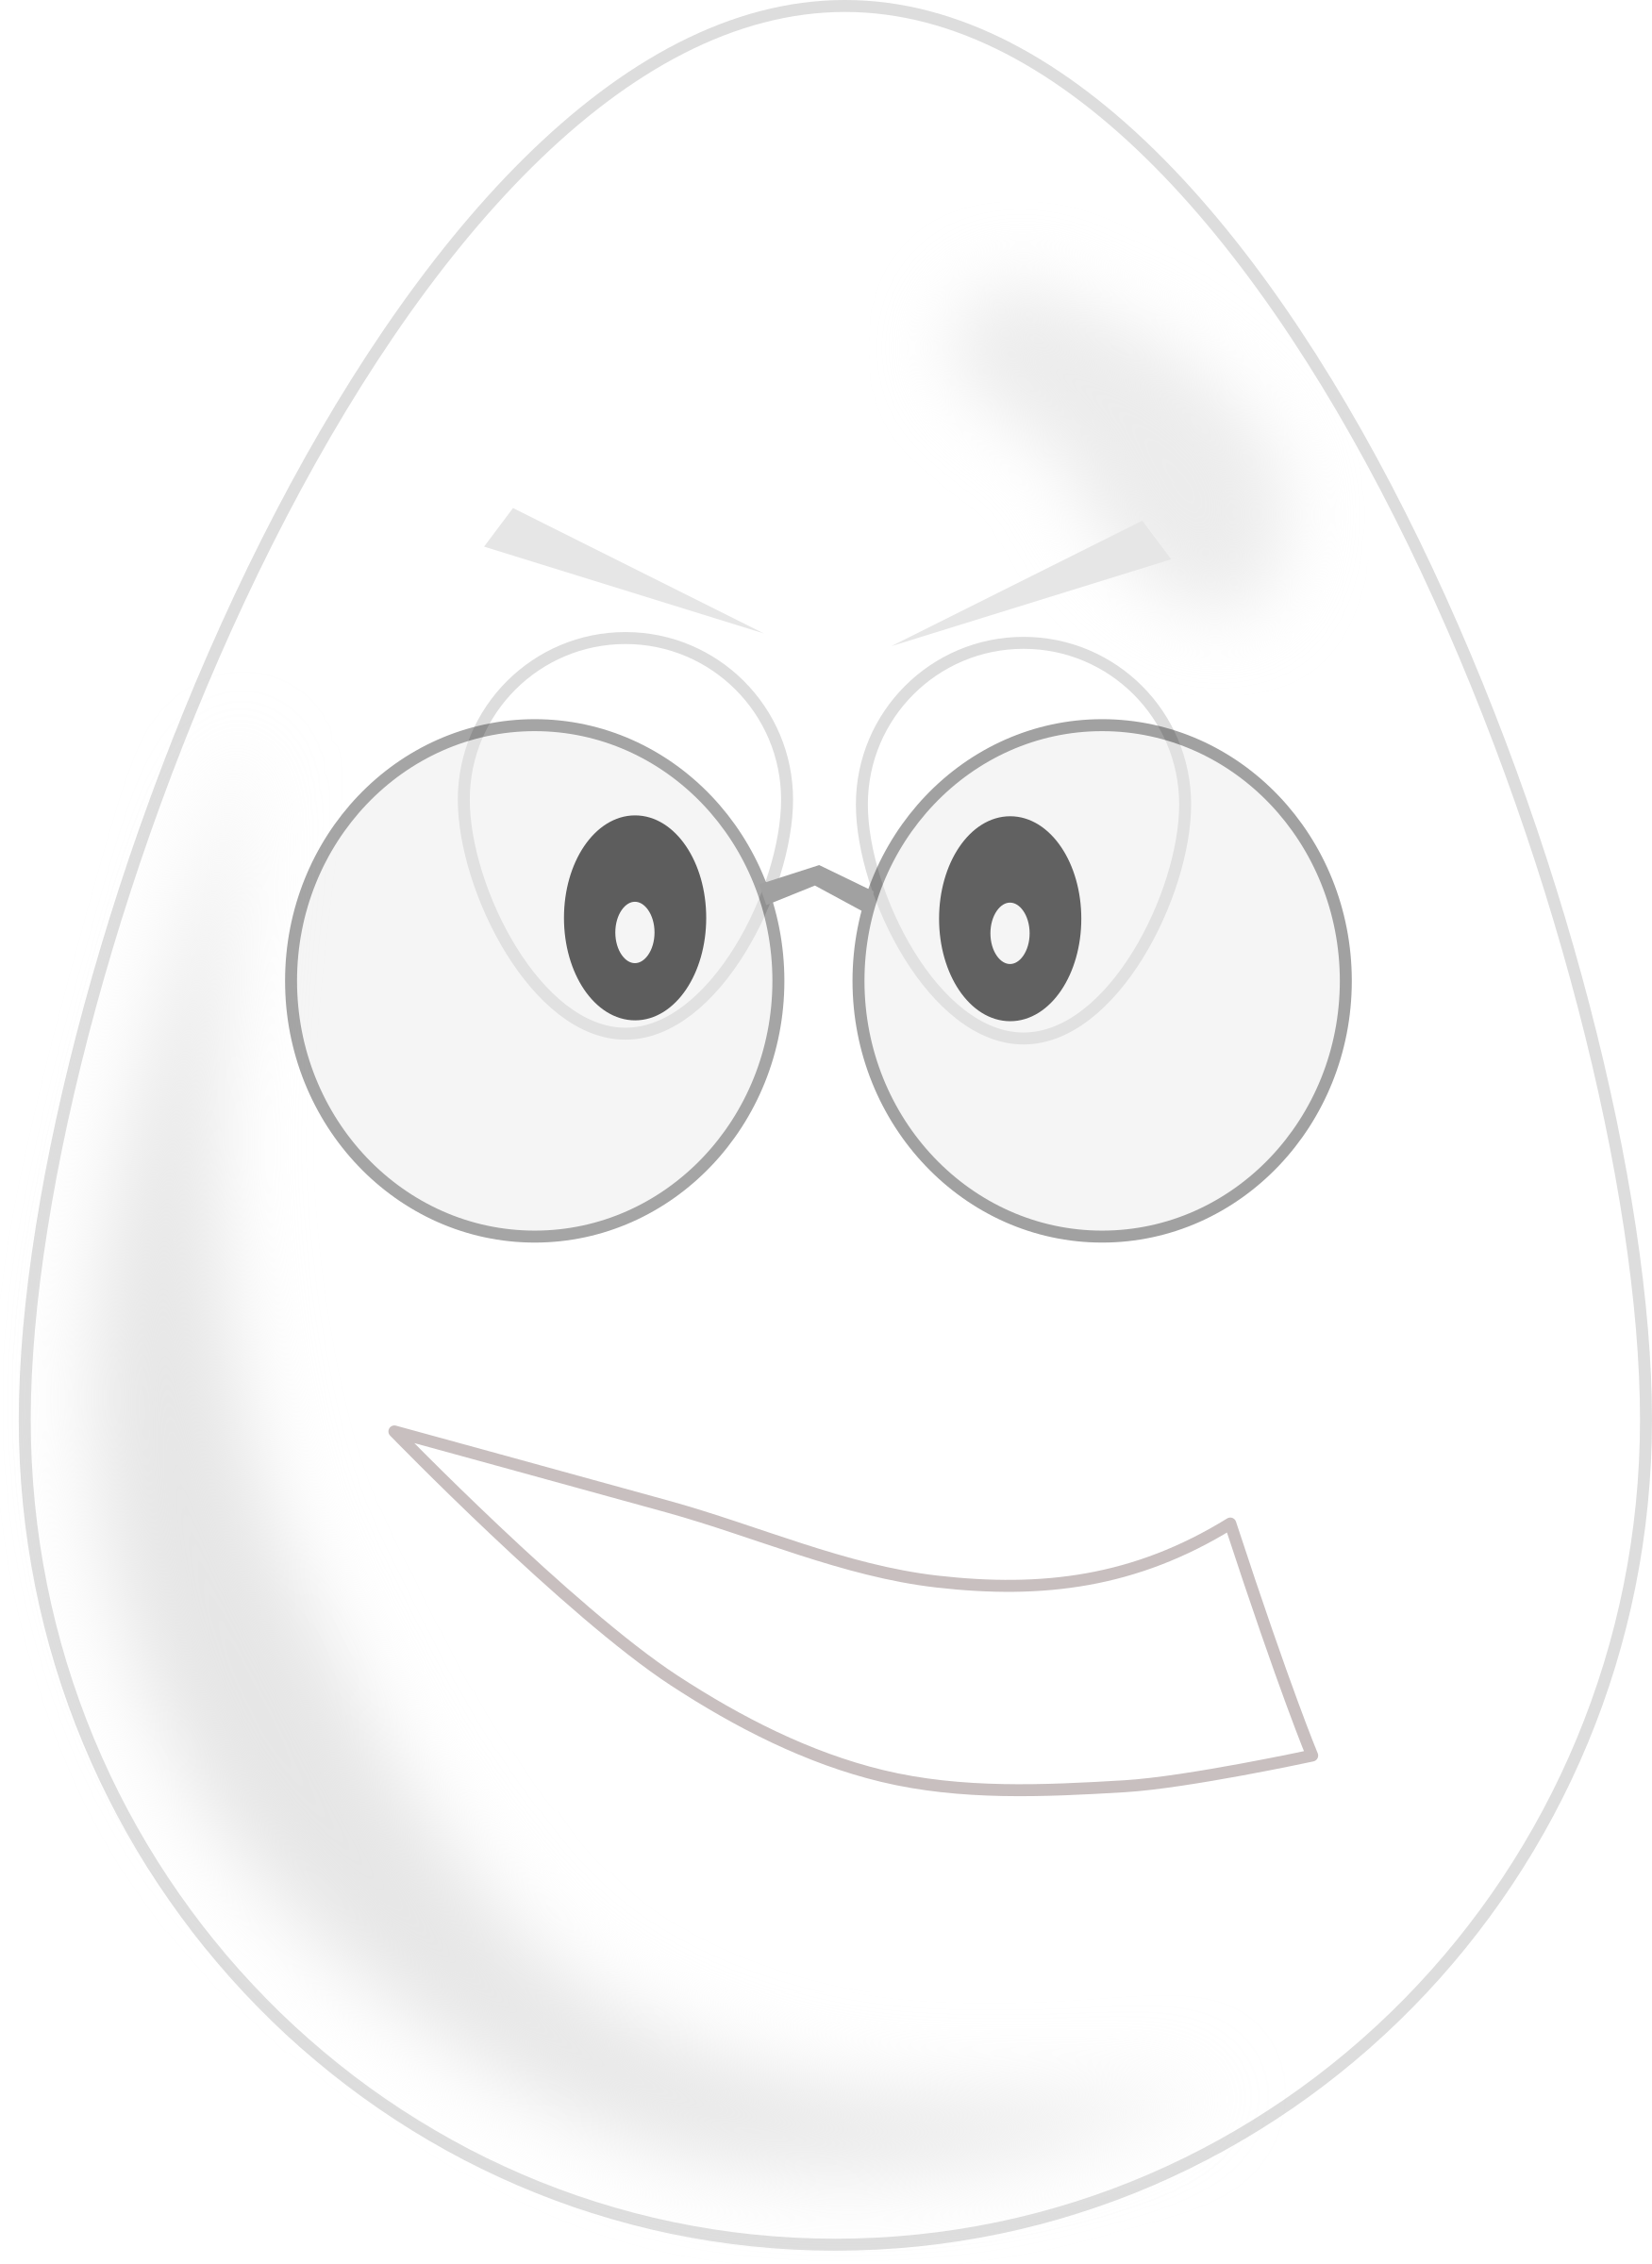 egg wear glasses by artbejo